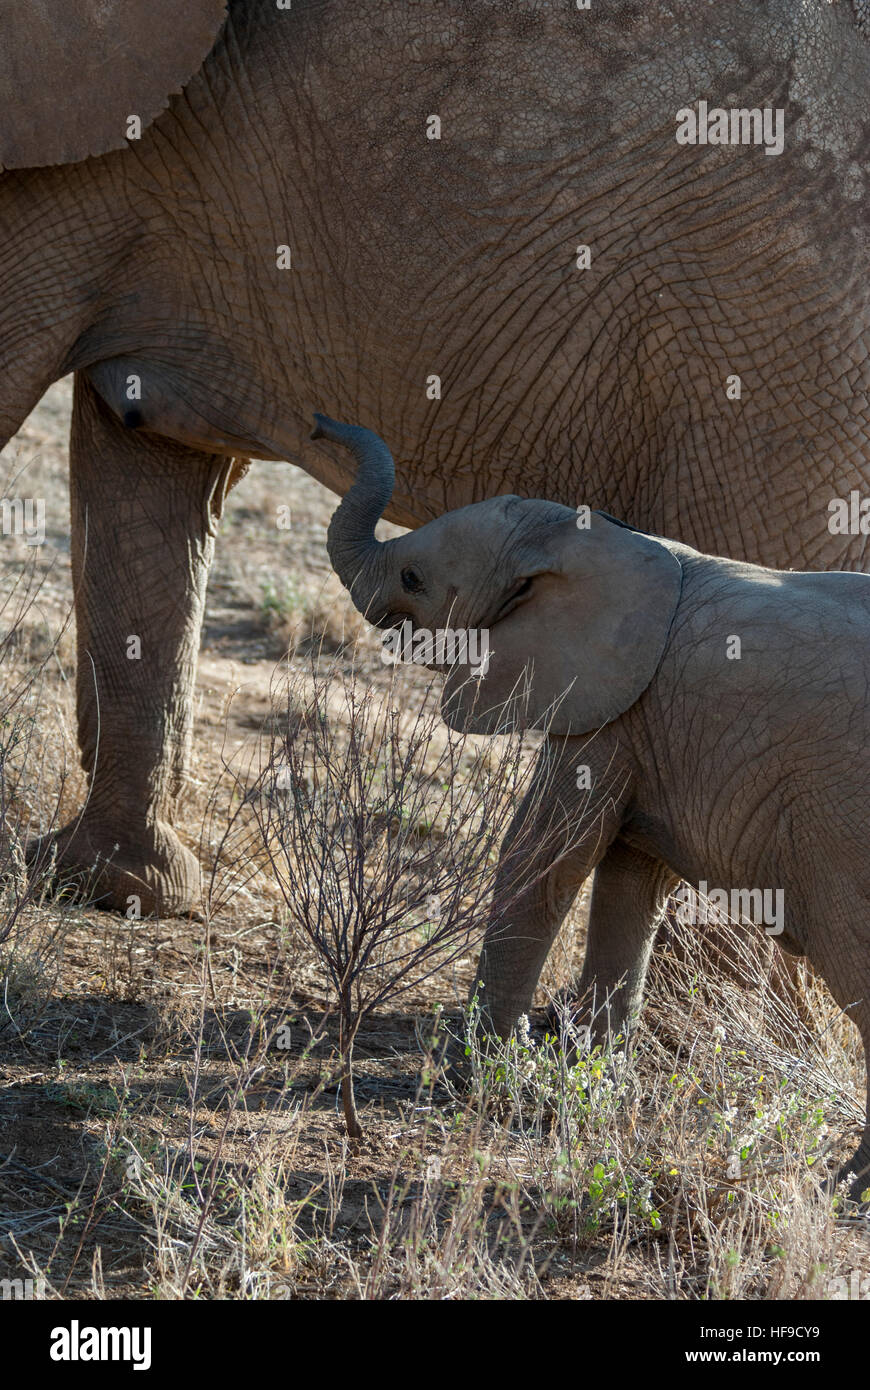 Baby Elephant by Mommy's Side - Stock Image